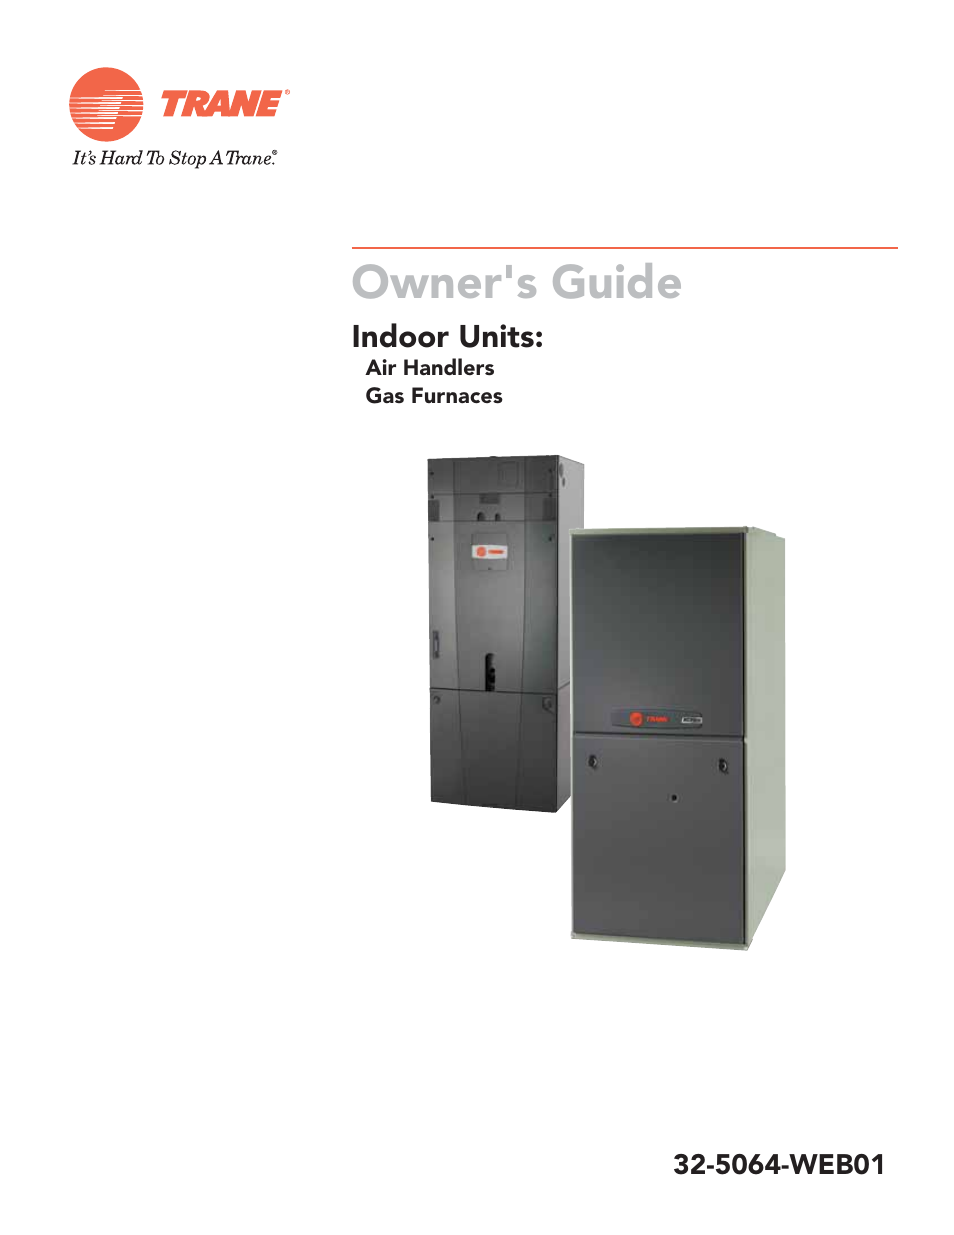 trane xr80 user manual